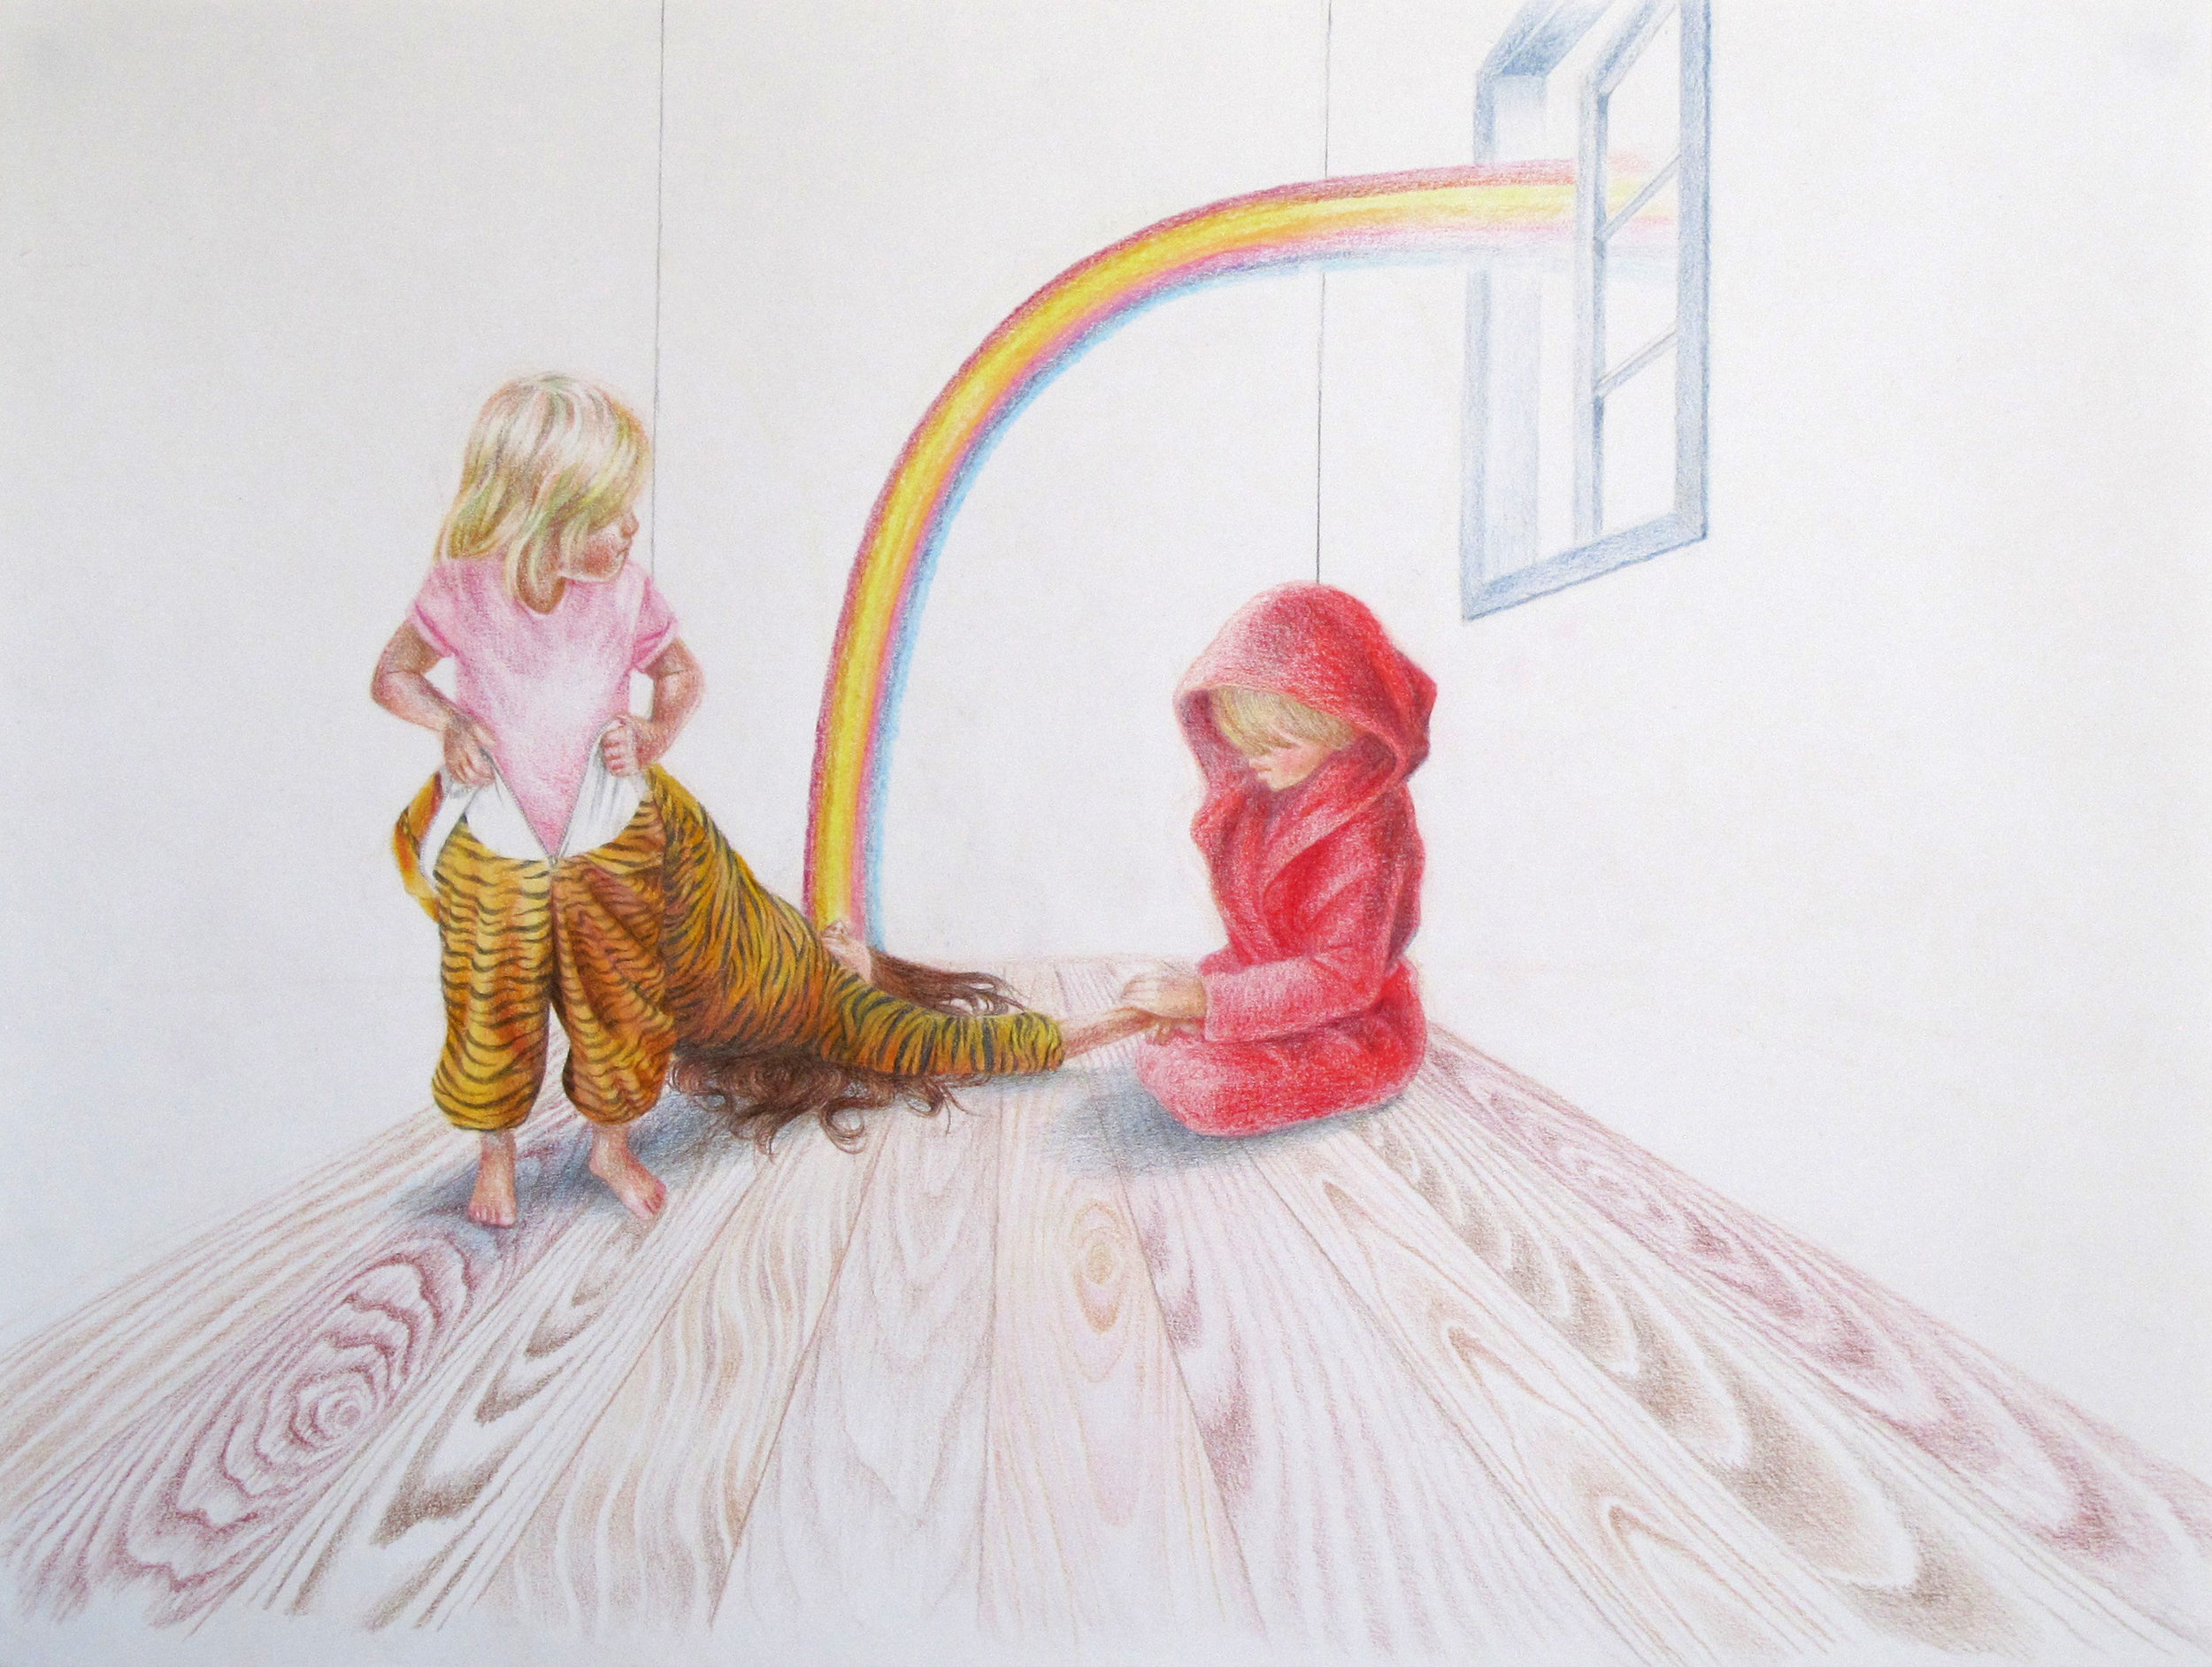 'Me Without You', coloured pencil and graphite on paper.